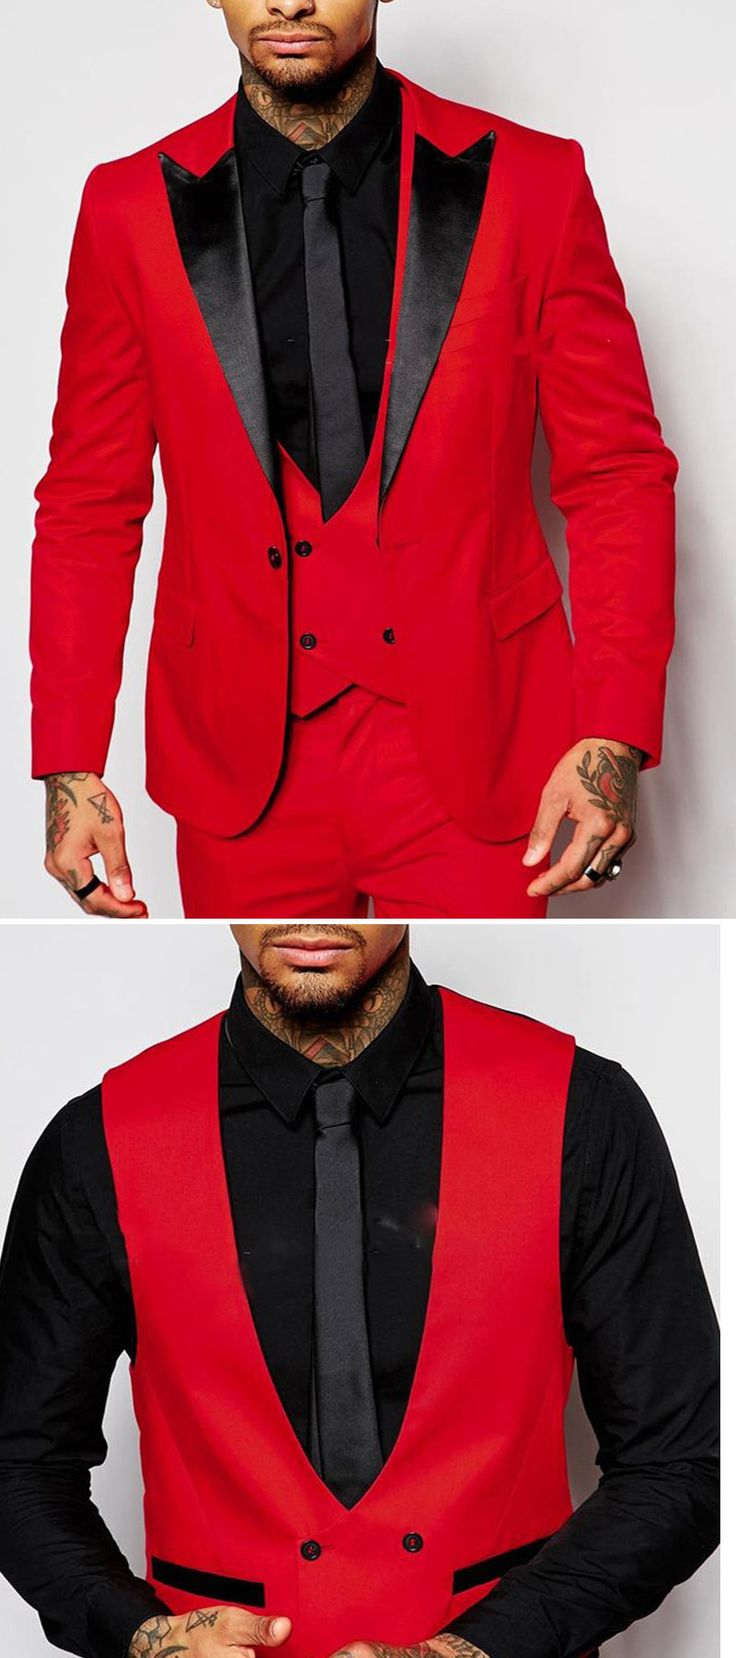 Black And Red Mobile Wallpapers: Red And Black Prom Suit Peak Lapel Three Pieces Men Suit